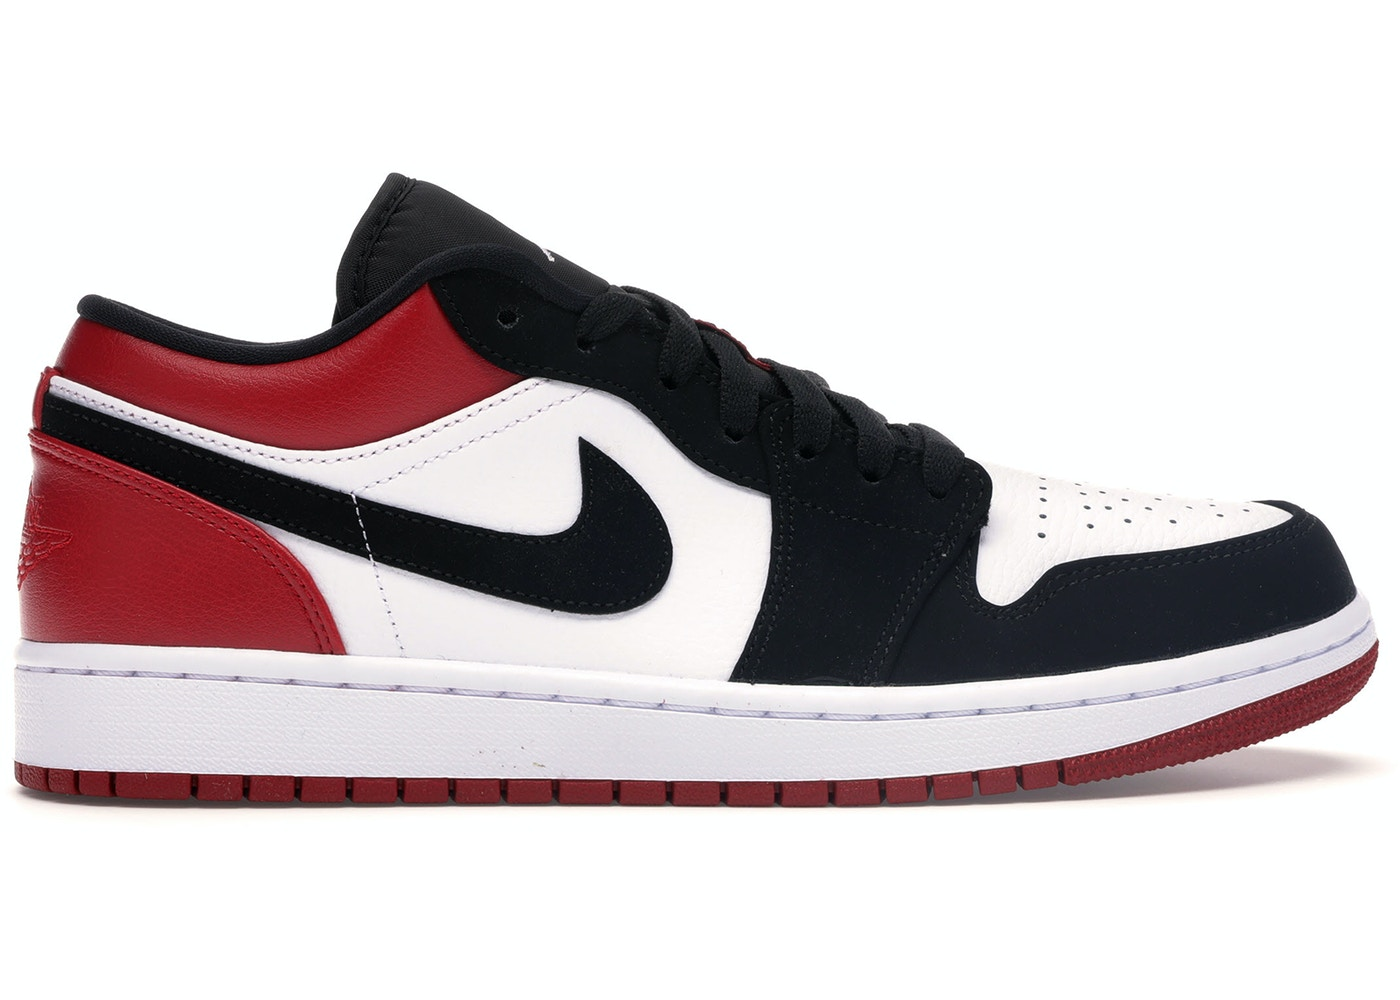 size 40 9d1e9 bc8f3 Jordan 1 Low Black Toe - 553558-116